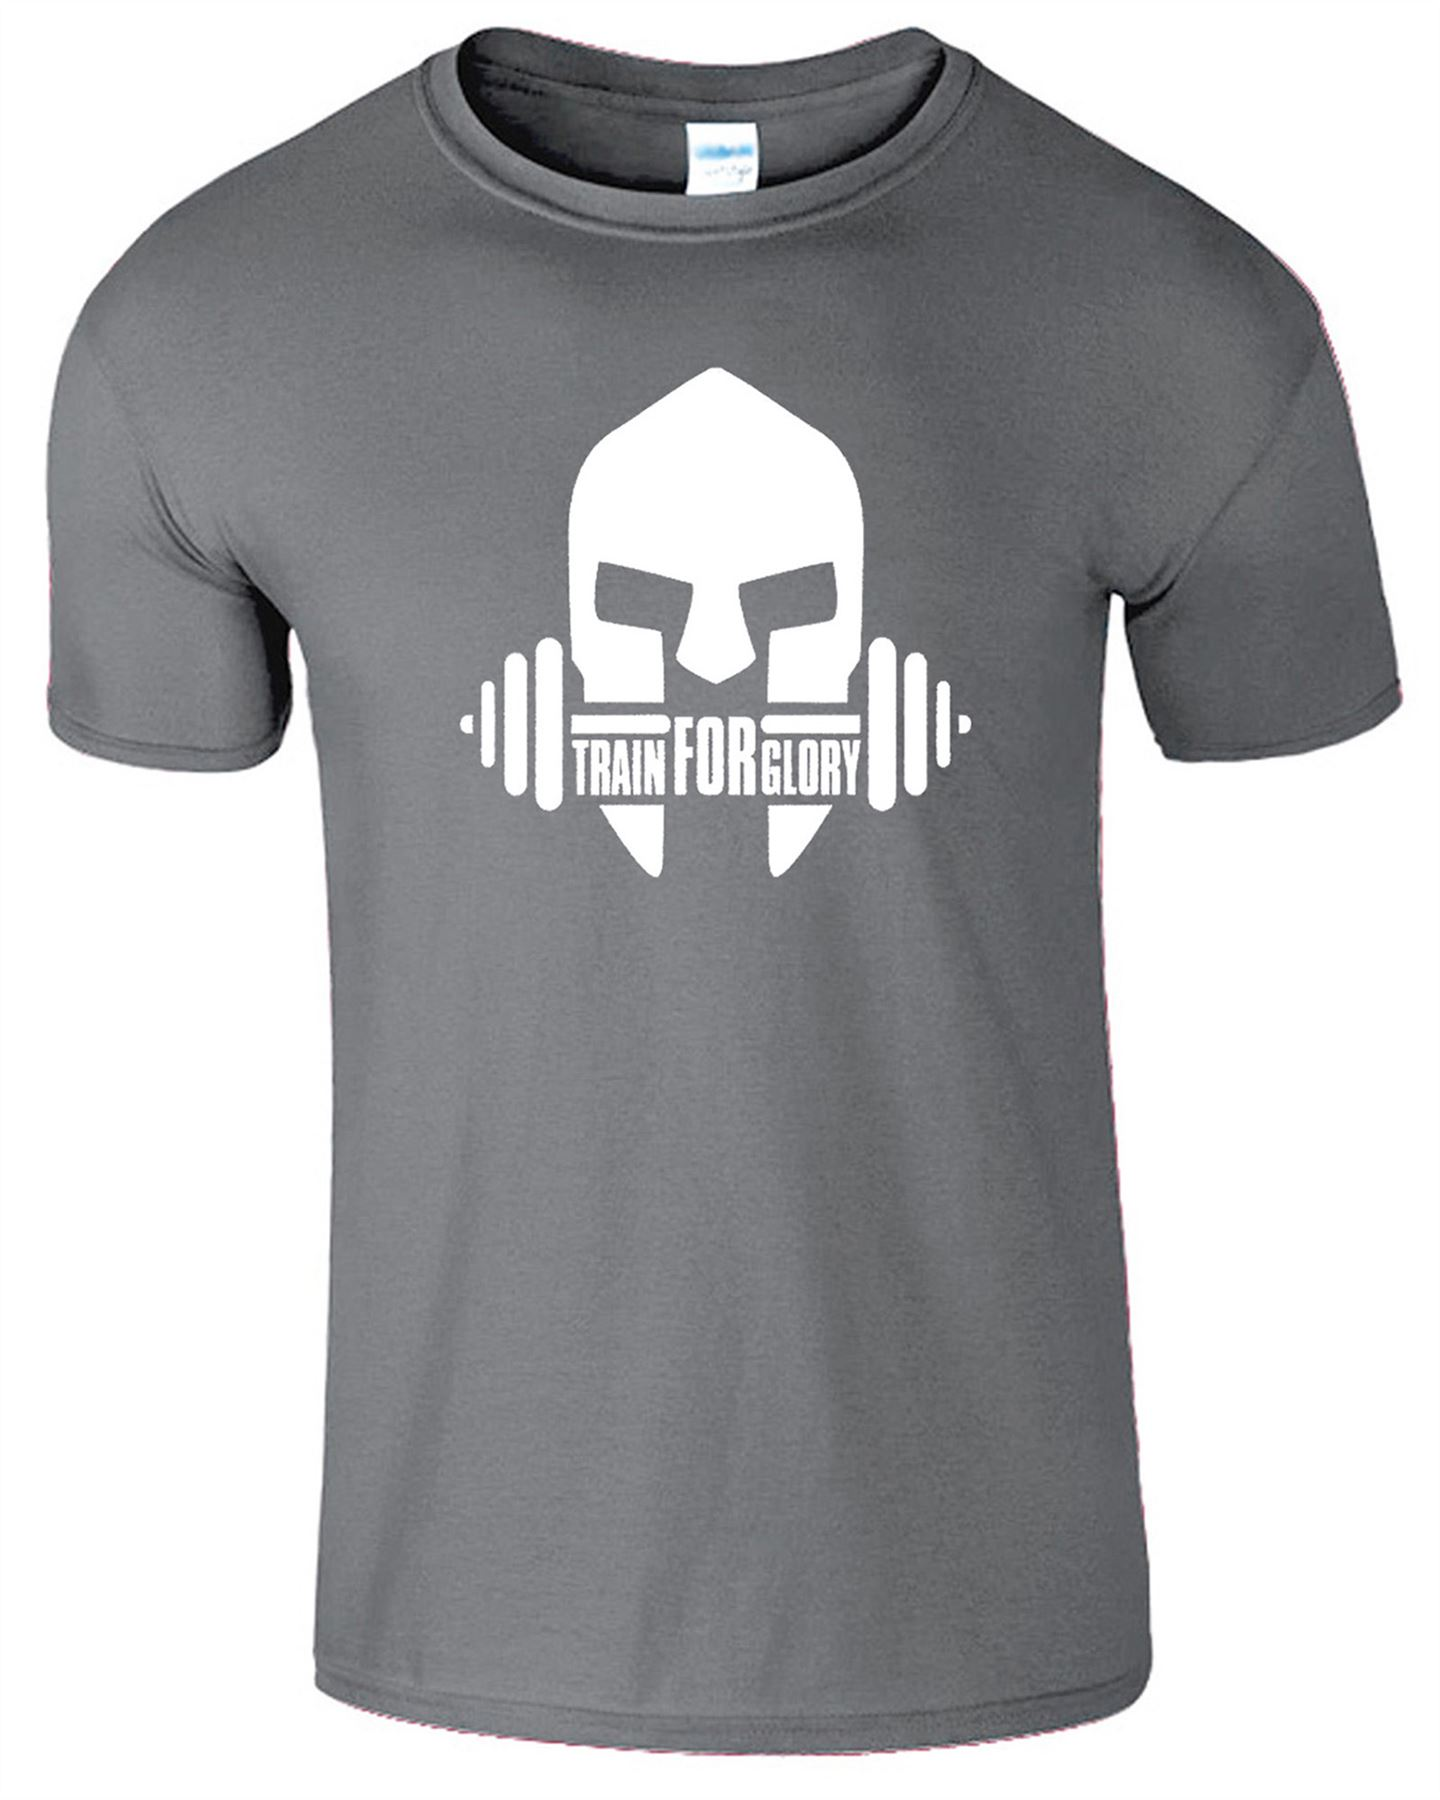 train for glory t shirt mens bodybuilding crossfit gym